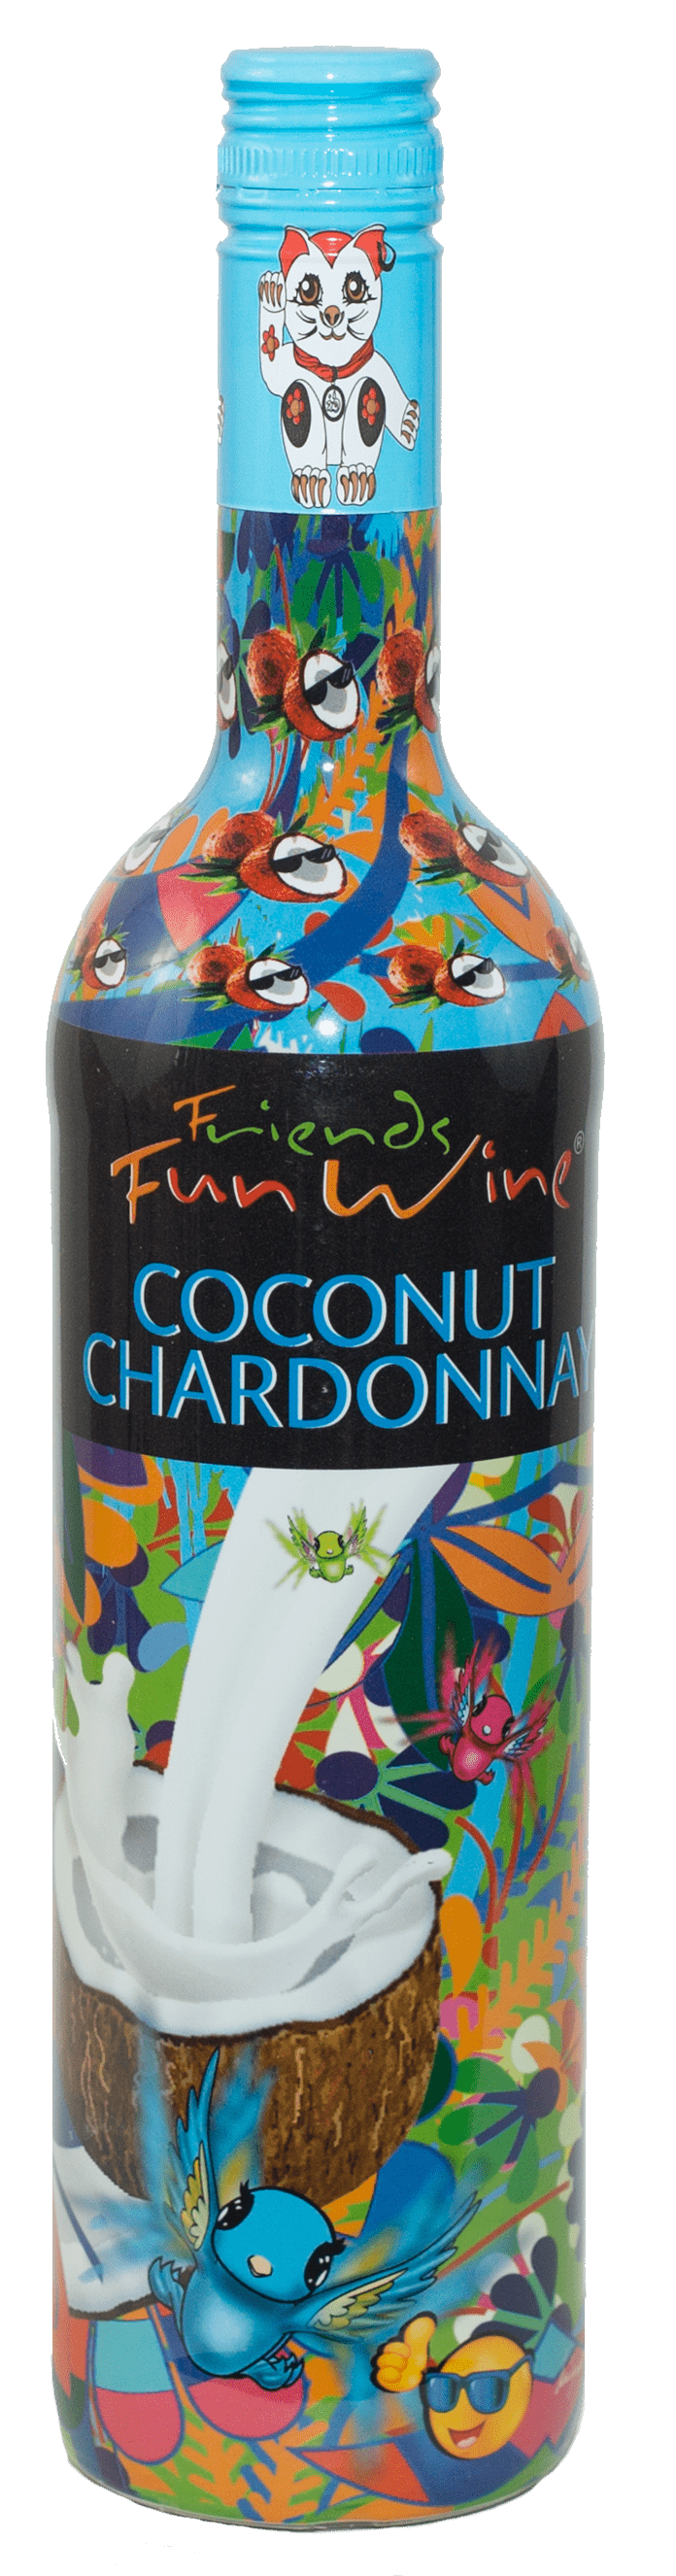 FRIENDS FUN WINE COCONUT CHARDONNAY™ 5.5% 750ml